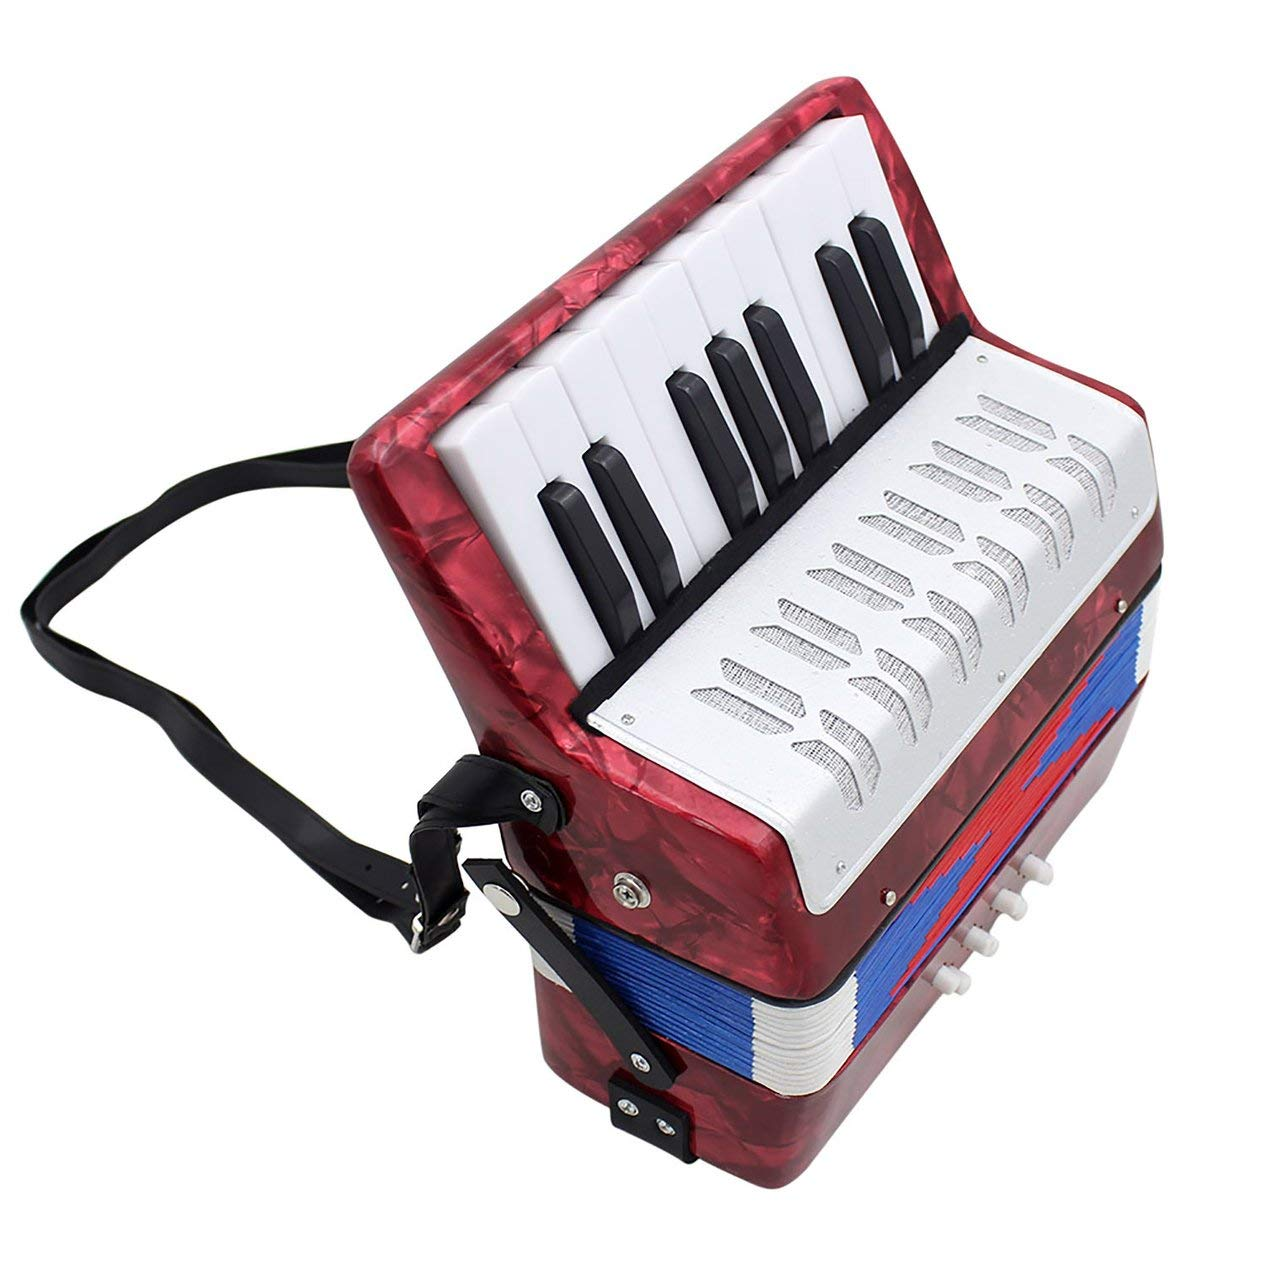 17-Key 8 Bass Accordion Musical Toy for Educational Musical Instrument Simulation Learning Concertina Rhythm by Fashinlook (Image #6)